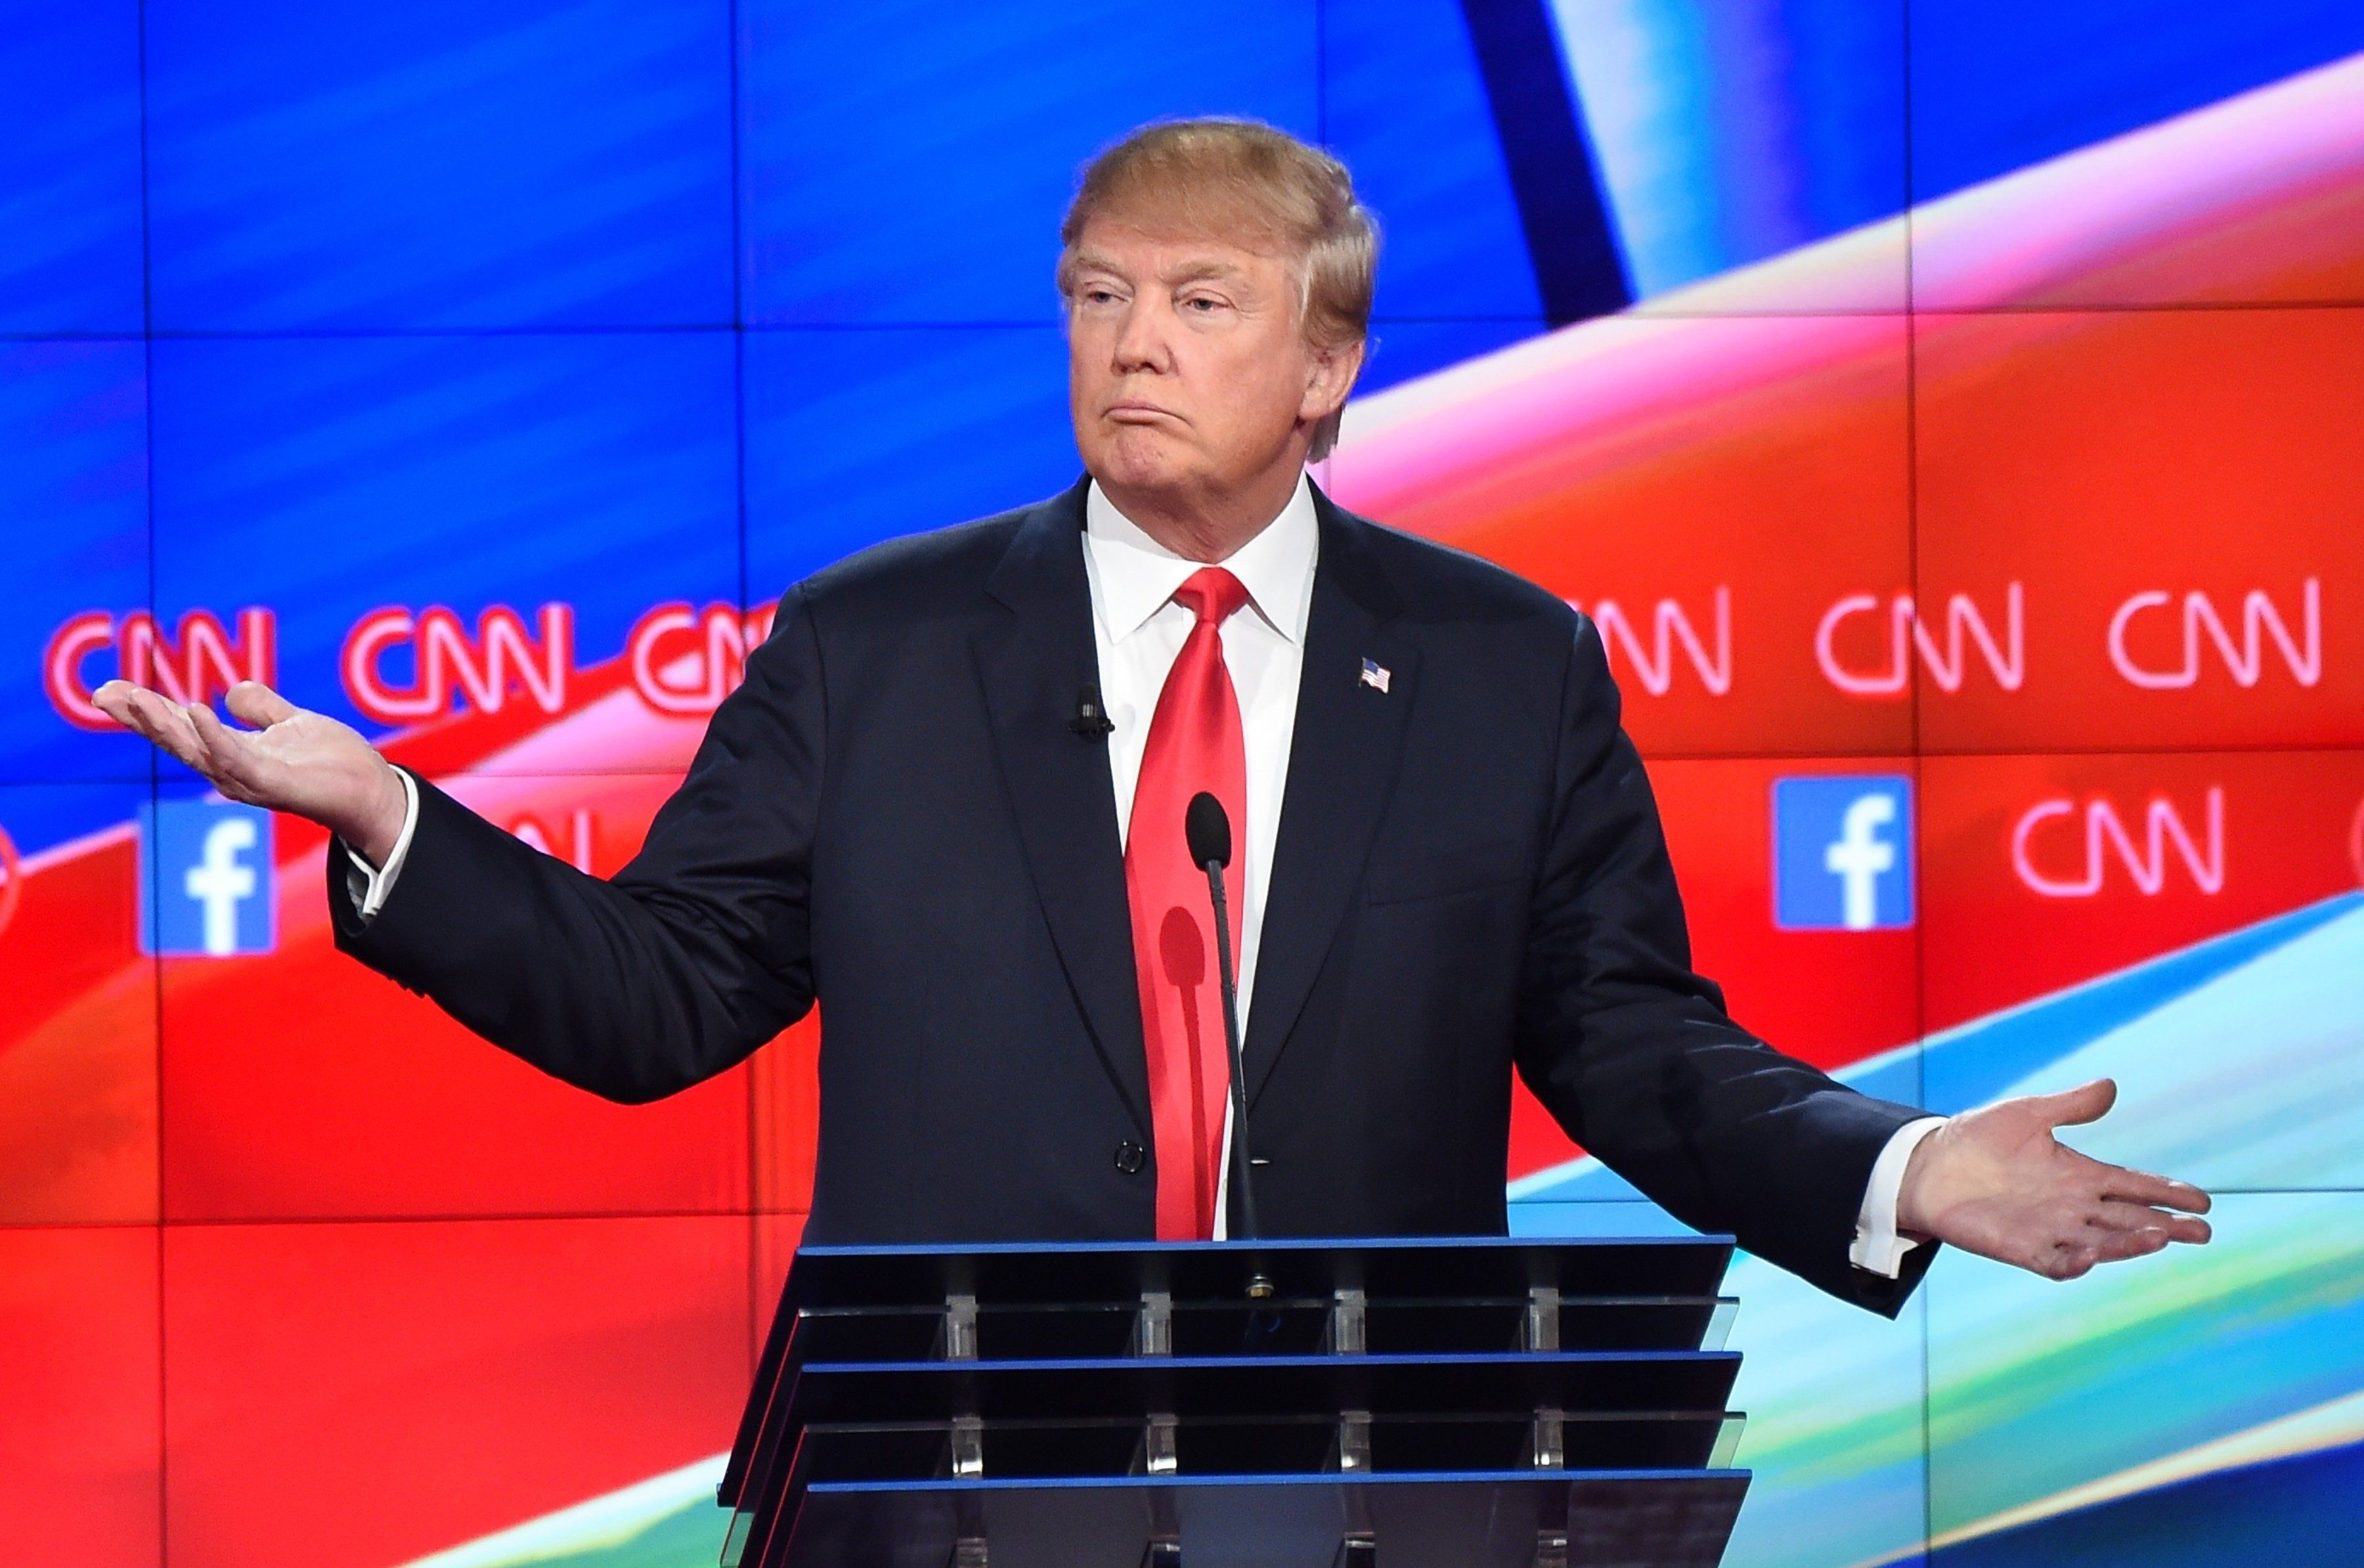 Republican presidential candidate businessman Donald Trump gestures during the Republican Presidential Debate, hosted by CNN, at The Venetian Las Vegas on December 15, 2015 in Las Vegas, Nevada.  AFP PHOTO/ ROBYN BECK / AFP / ROBYN BECK        (Photo credit should read ROBYN BECK/AFP/Getty Images)